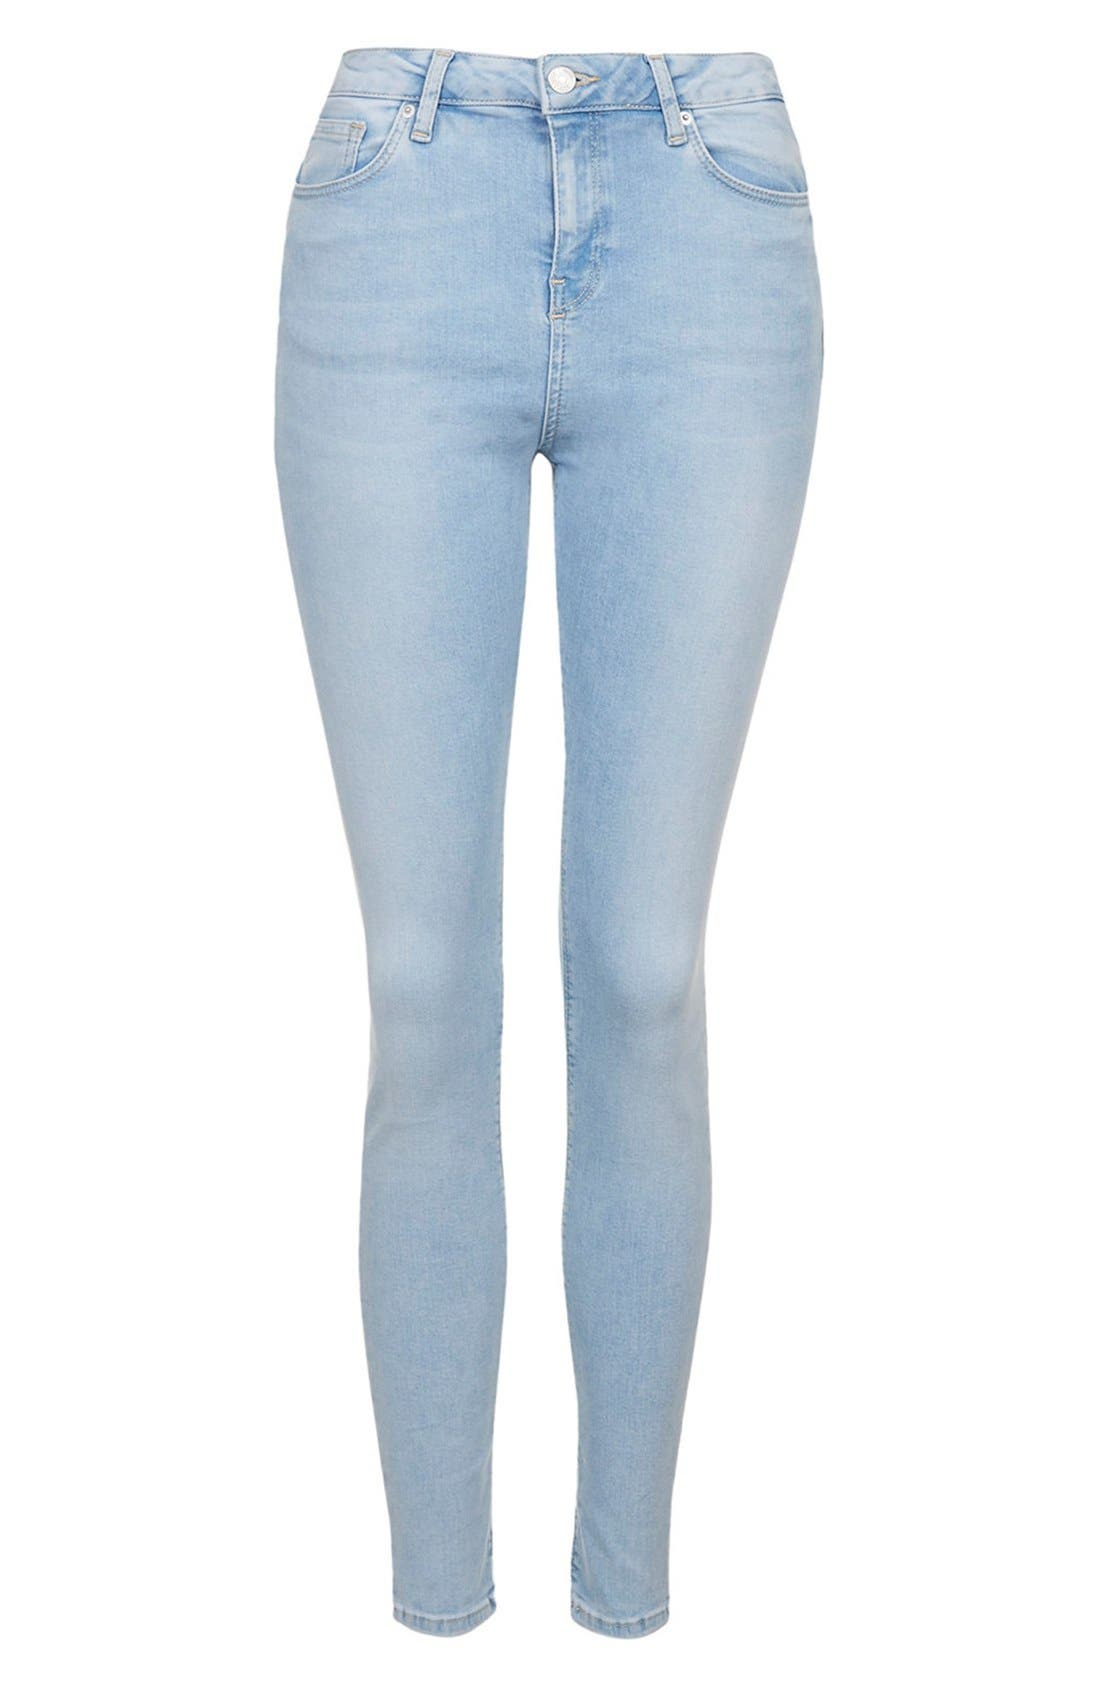 Alternate Image 3  - Topshop Moto 'Jamie' Bleached Skinny Jeans (Light Denim) (Regular & Short)